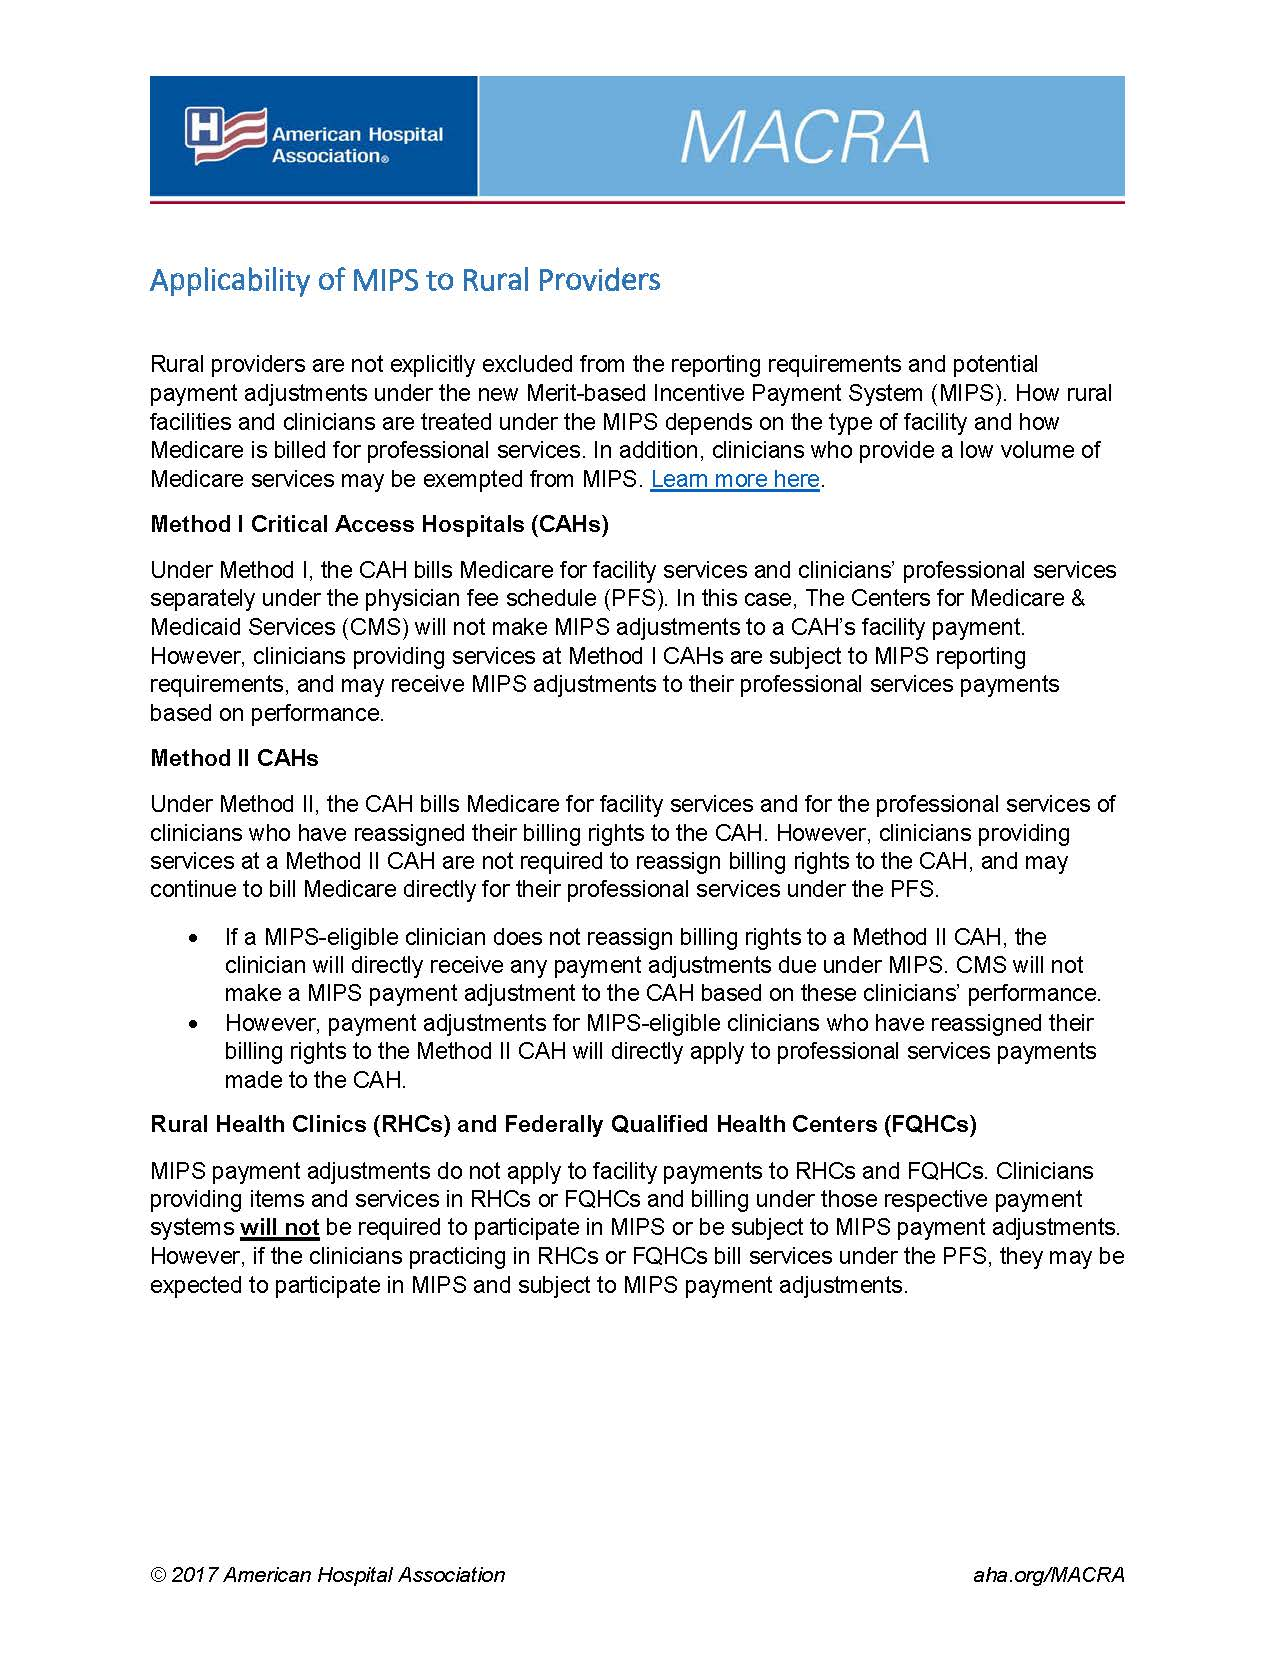 Applicability of MIPS to Rural Providers | AHA